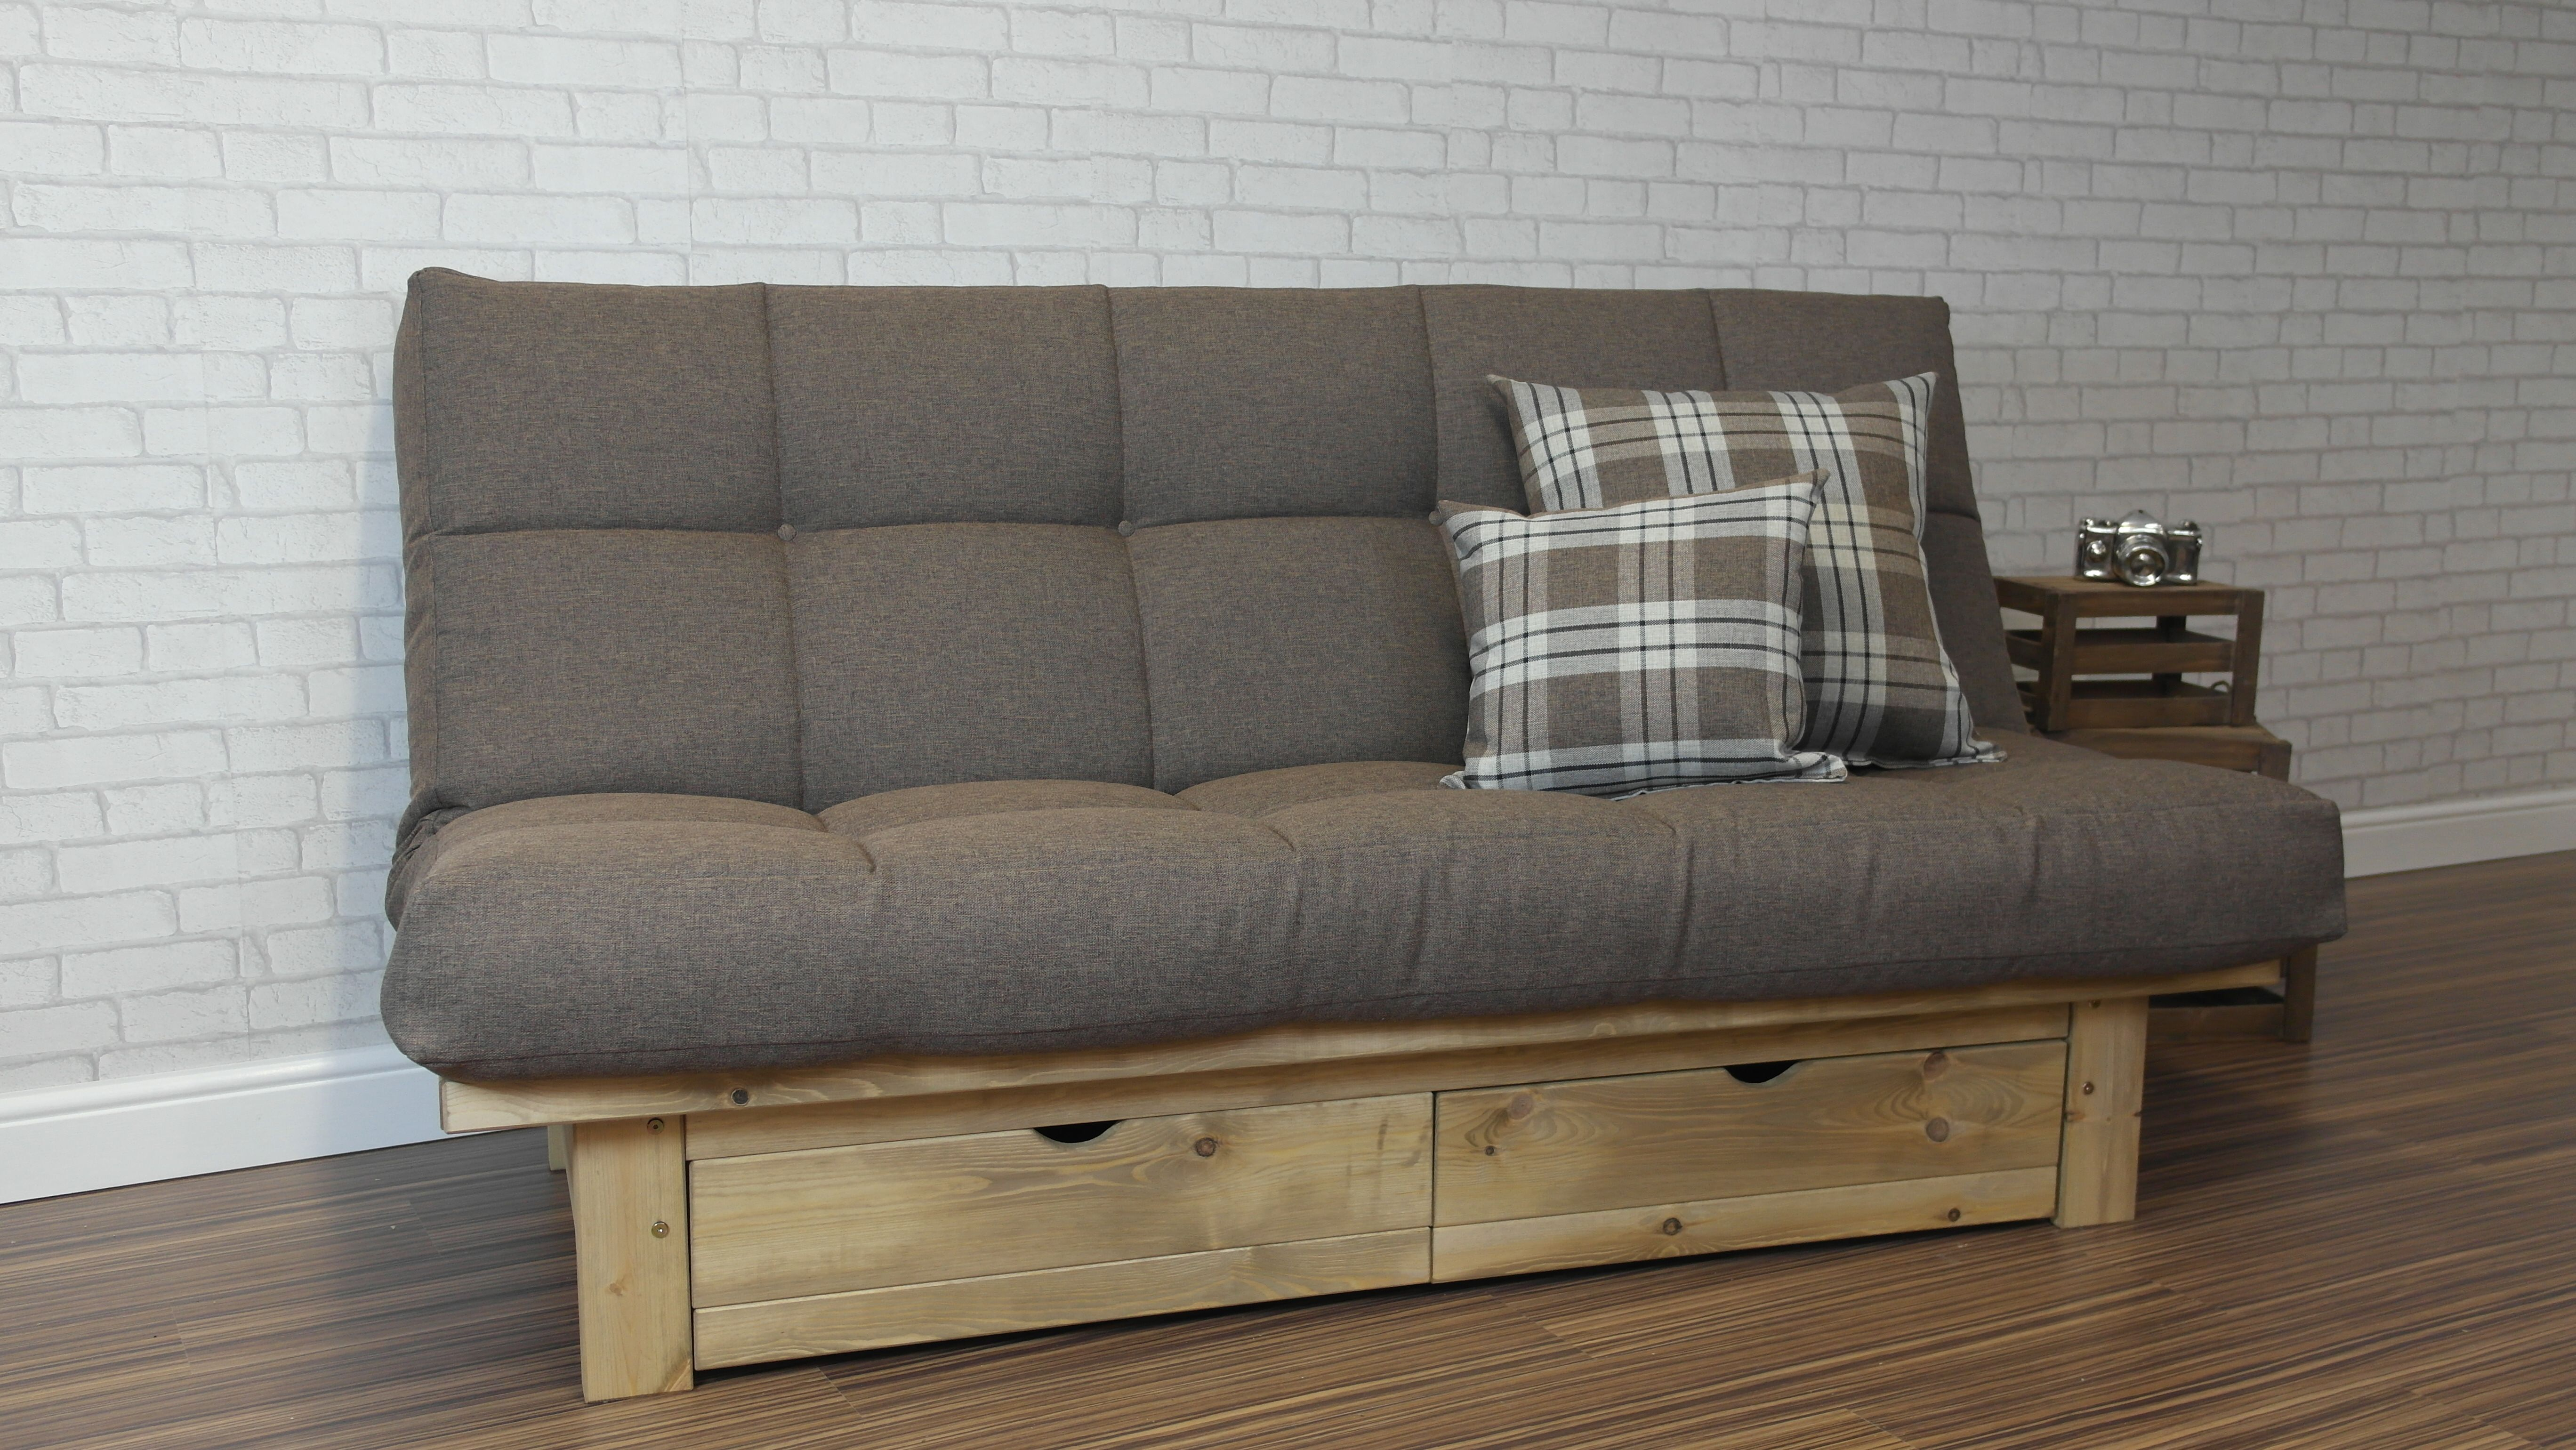 Belvedere Futon Style Sofa Bed. Hand Made In Yorkshire And Delivered  Throughout The U.K.